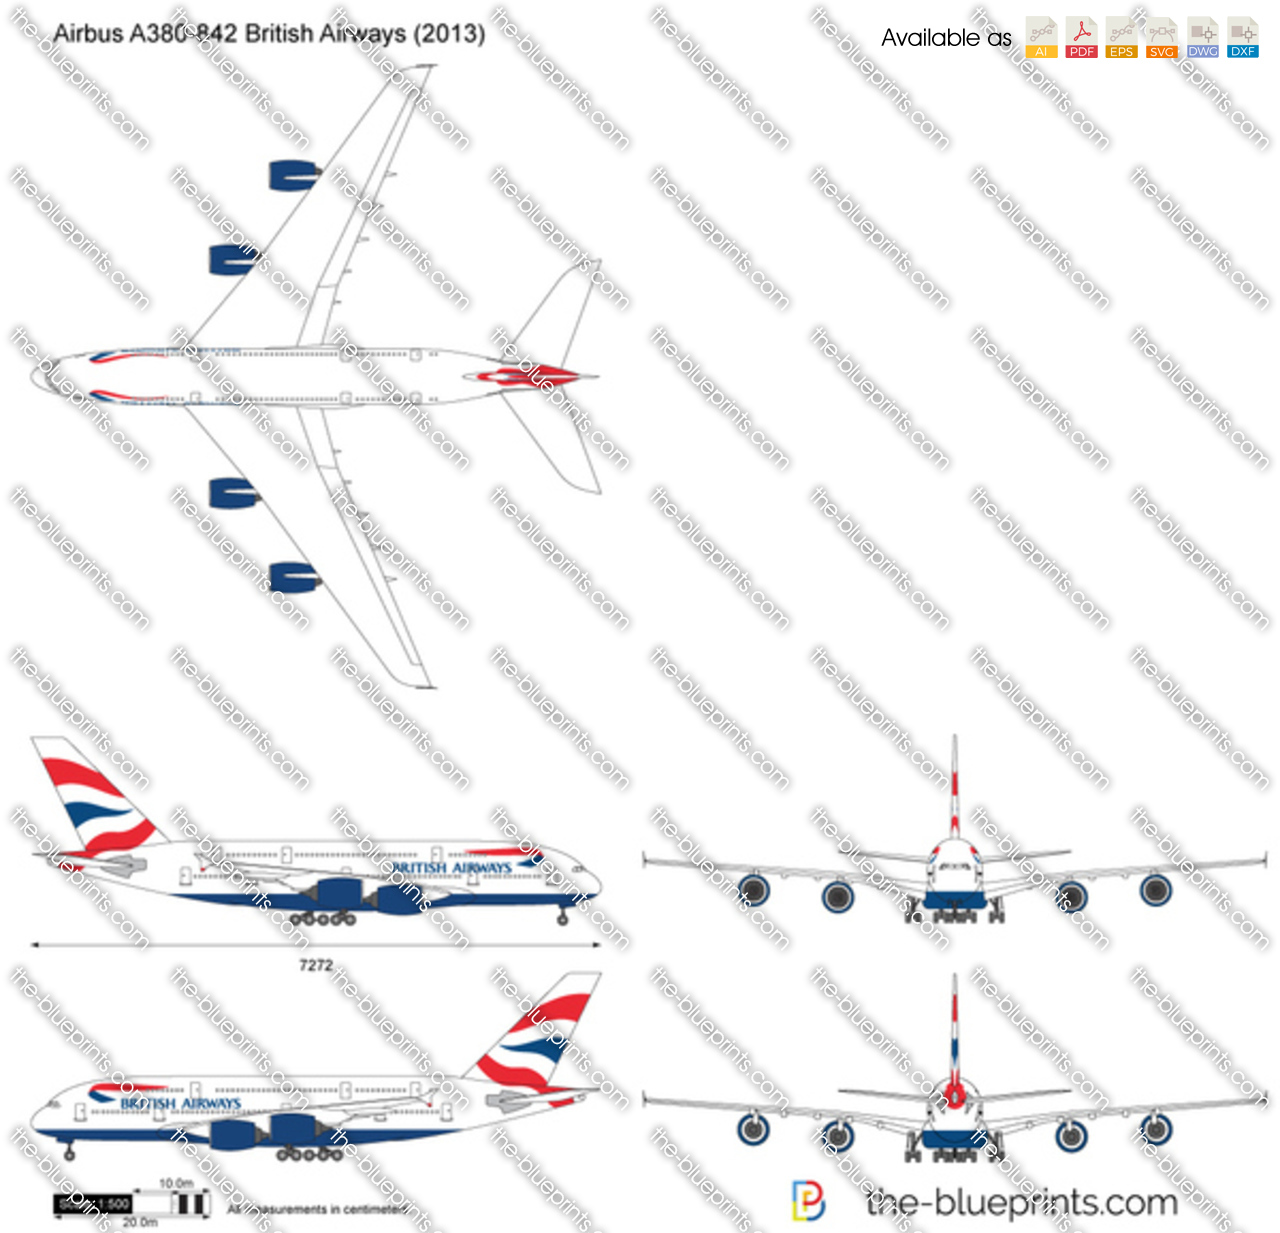 Airbus A380-842 British Airways 2018